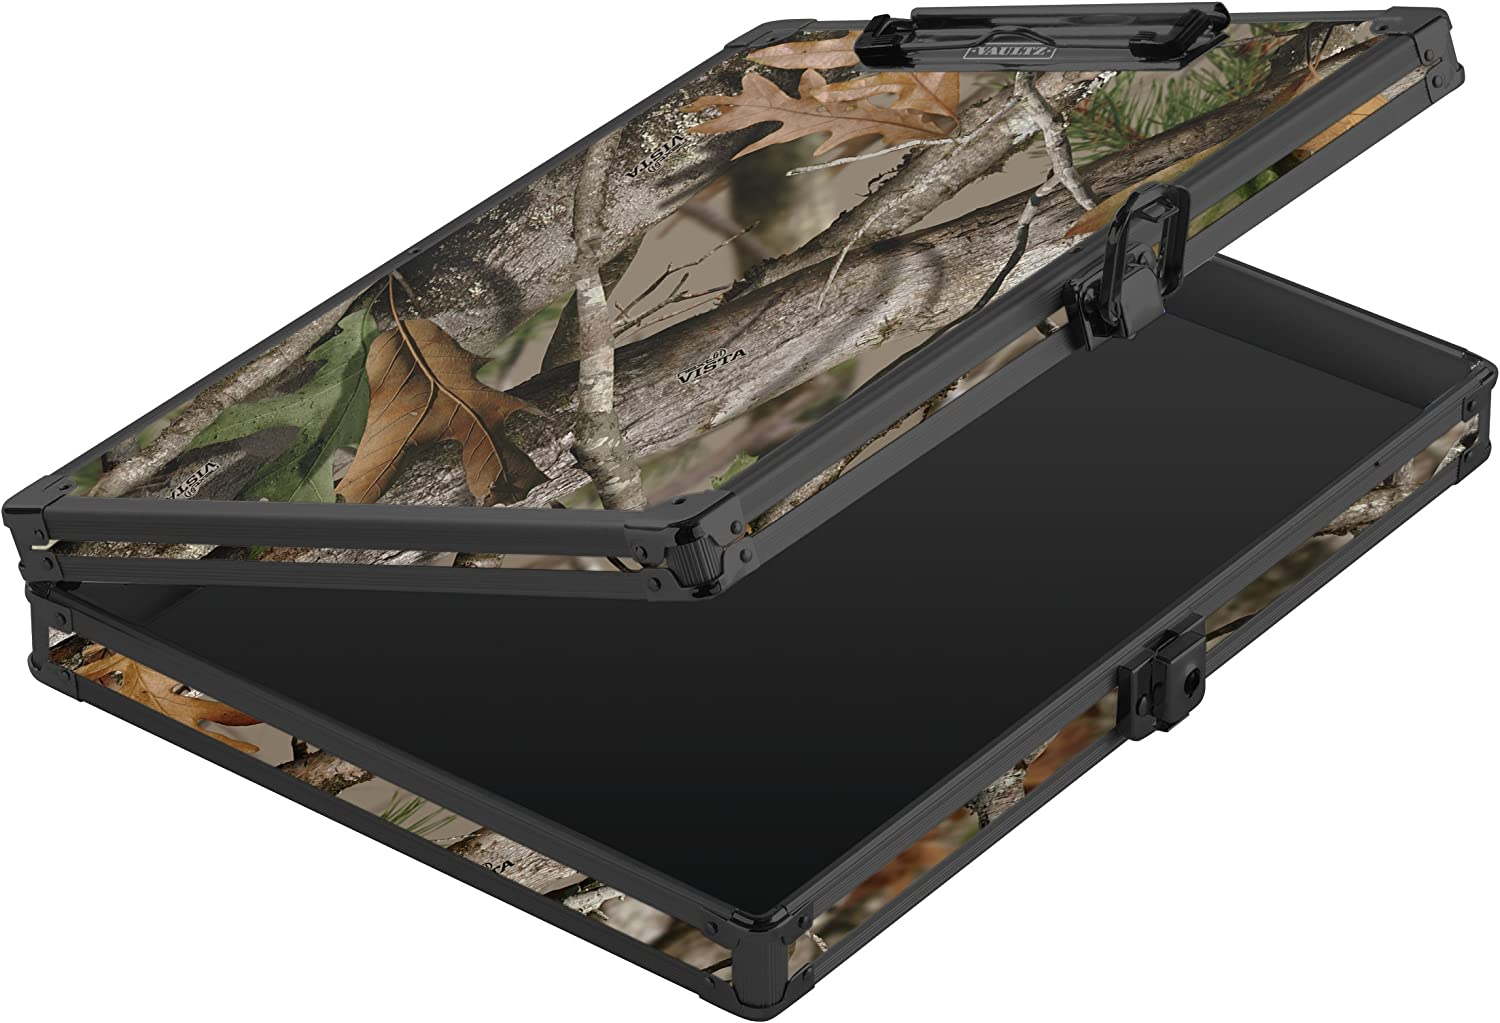 "Vaultz Locking Clipboard with Storage for Letter Size Sheets, 12.5"" x 10.5"" x 2.75"", Key Lock, Next Camo (VZ03462)"